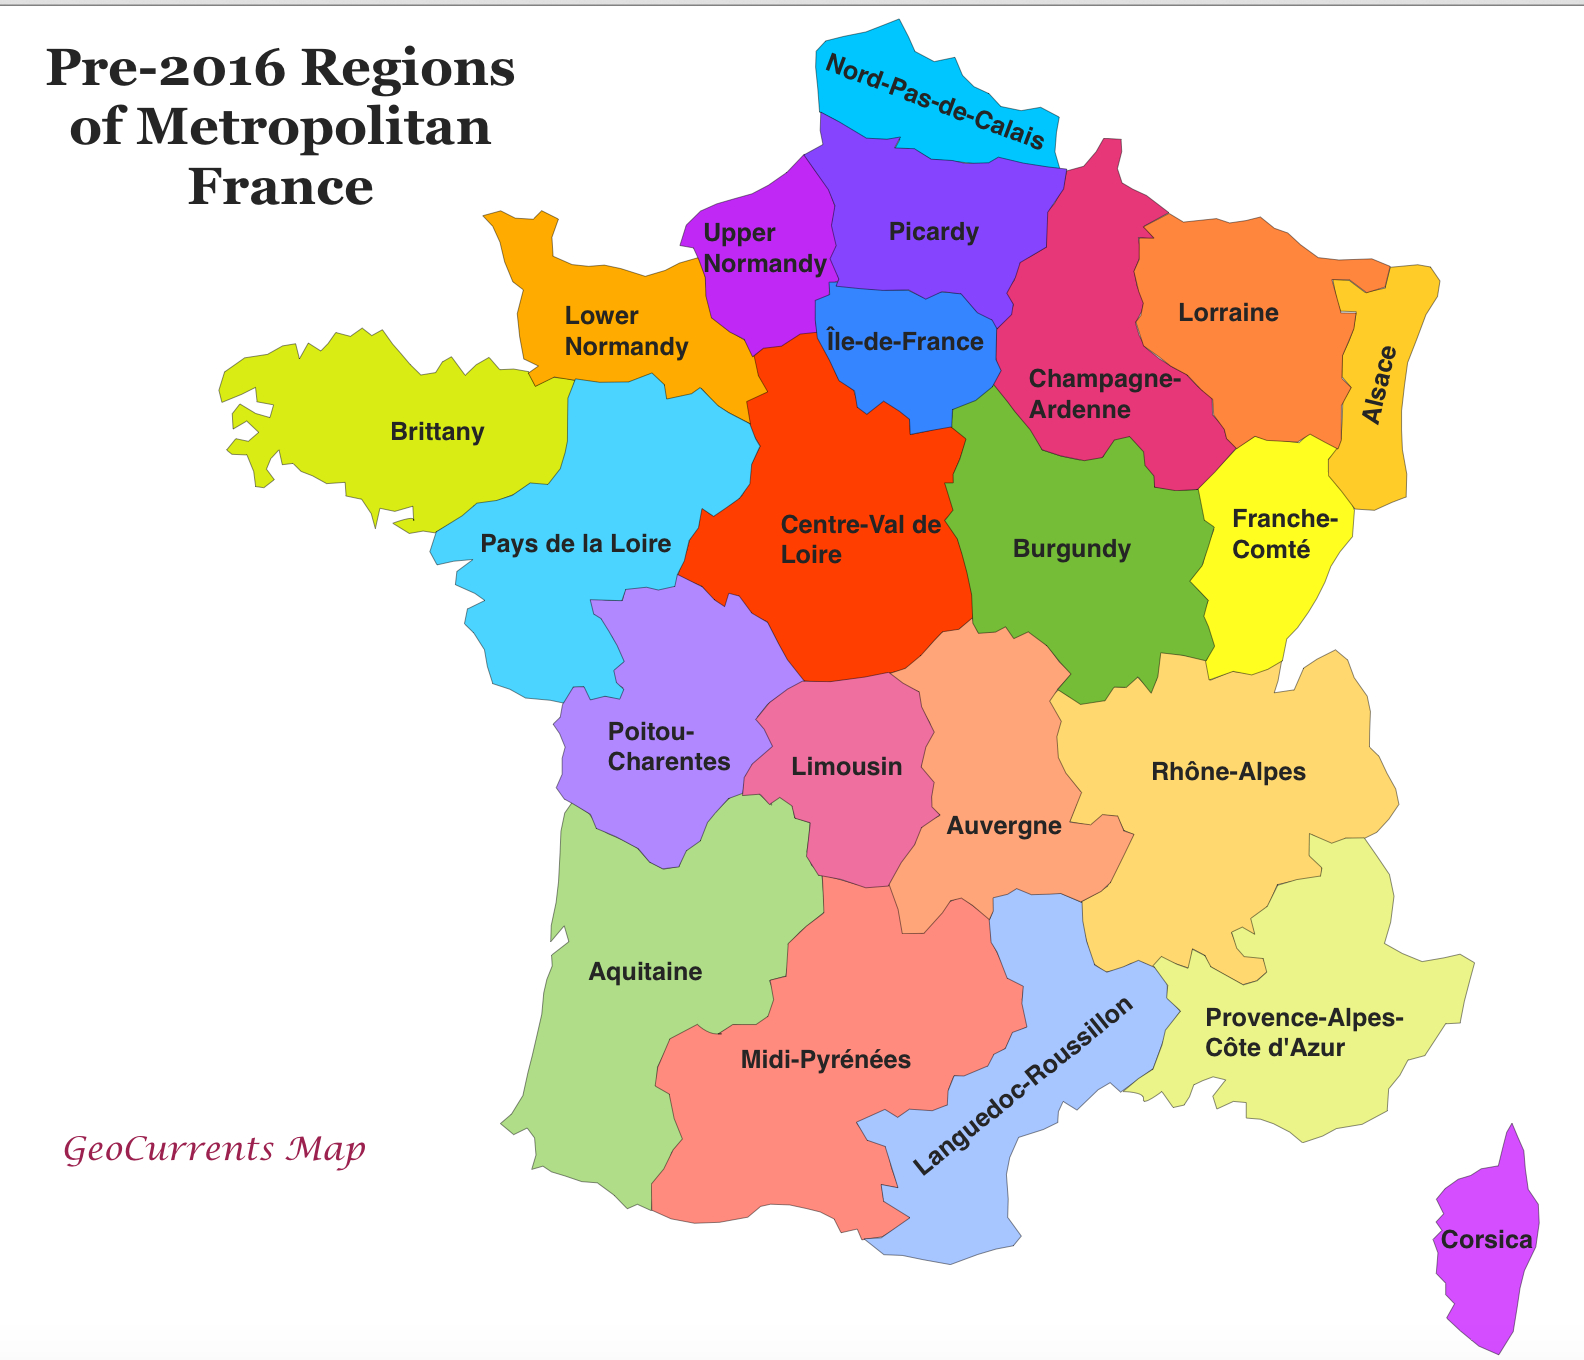 Customizable Maps Of France, And The New French Regions à Map De France Regions